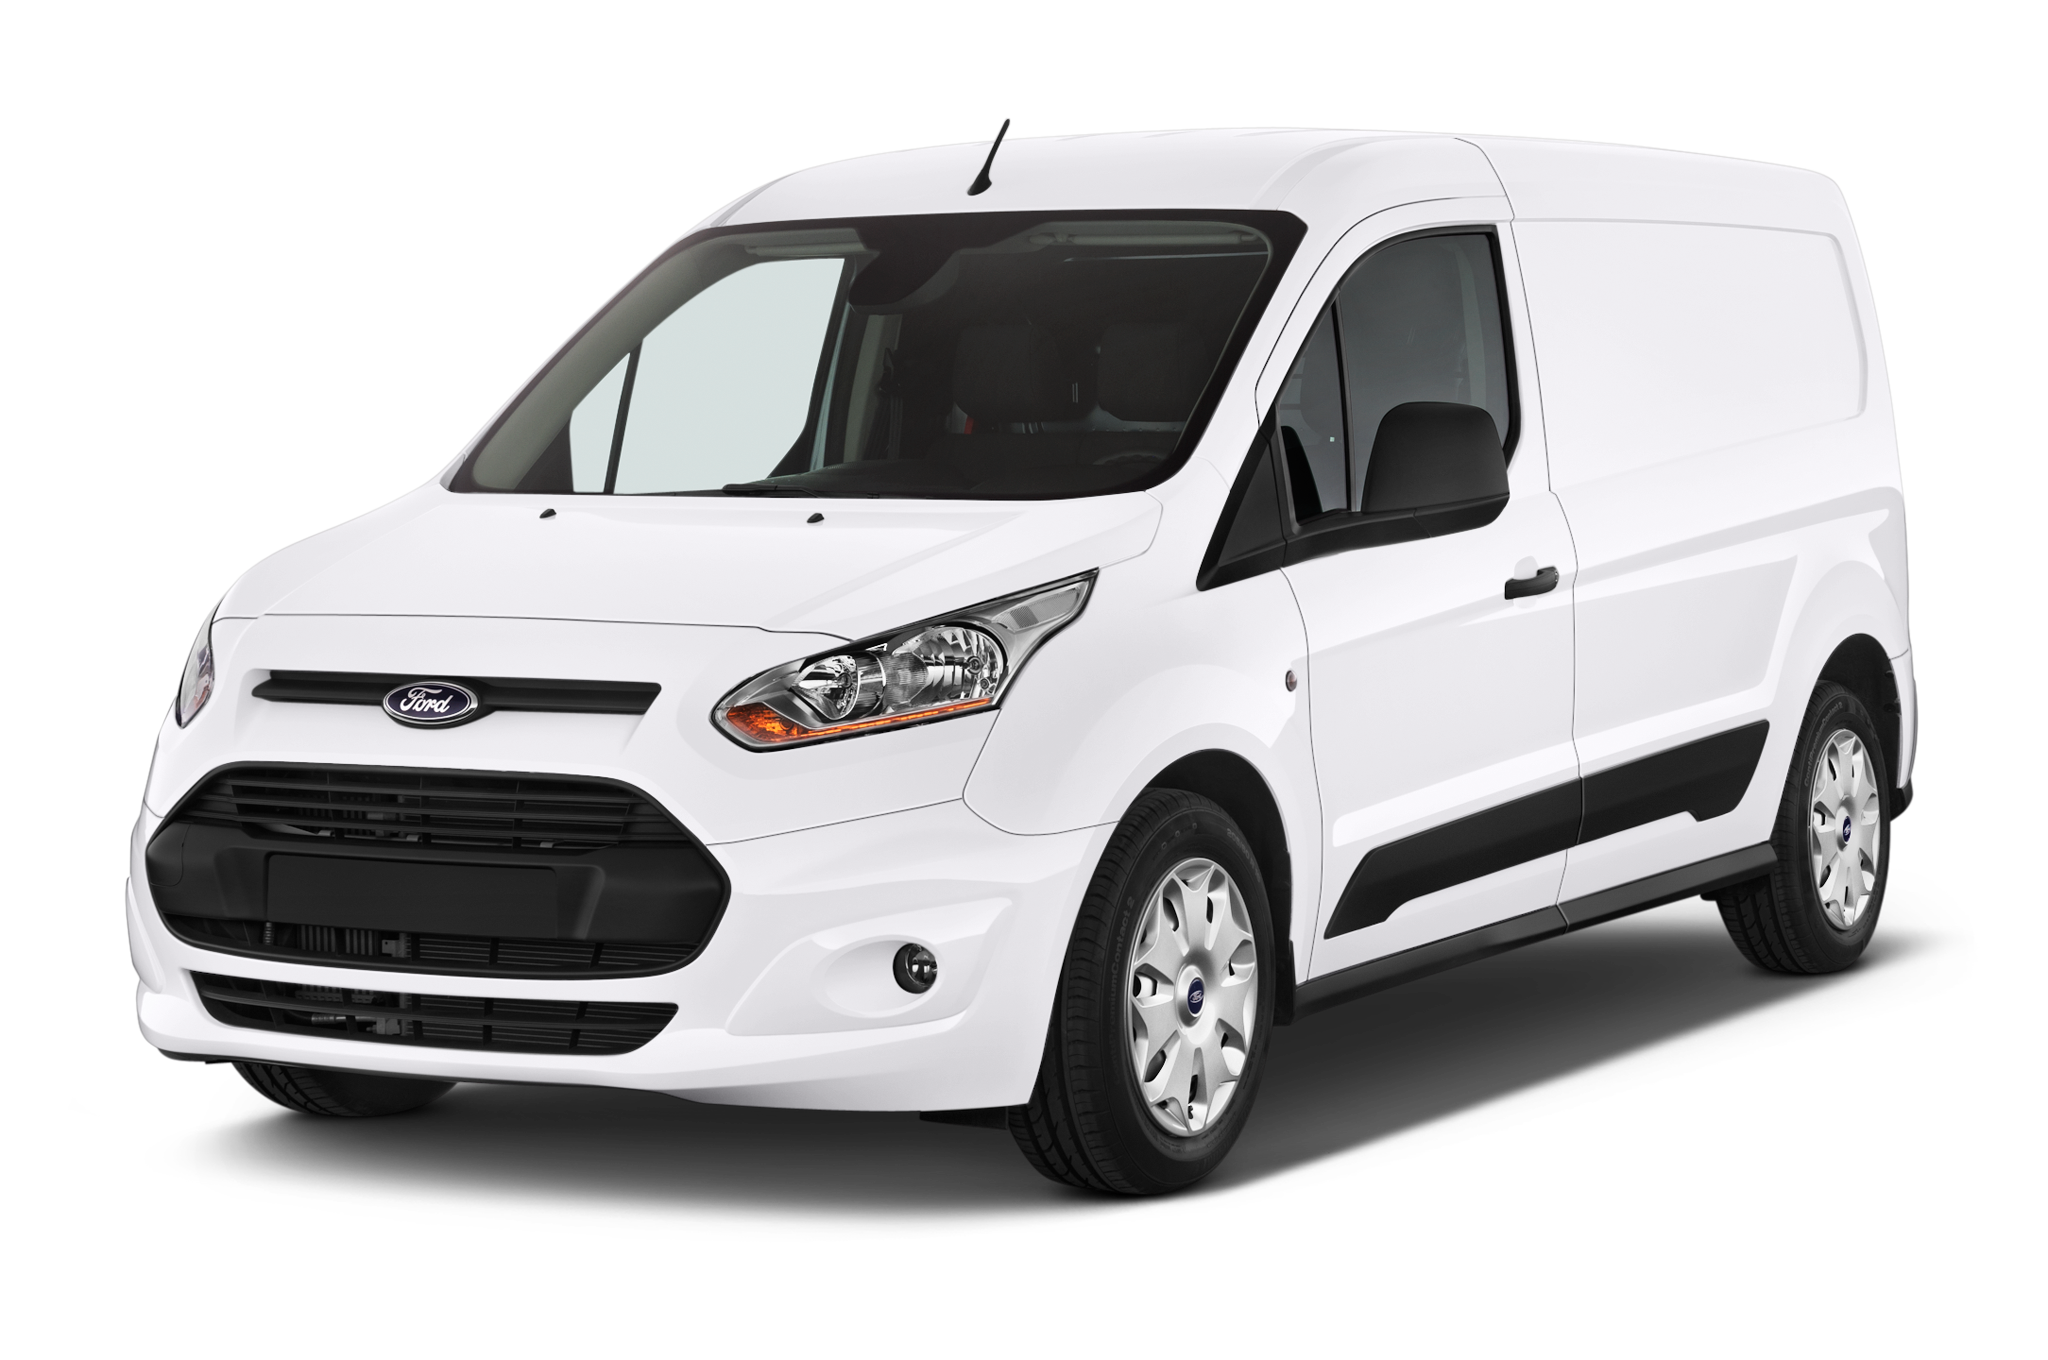 Ford Transit Tourneo (94-00)